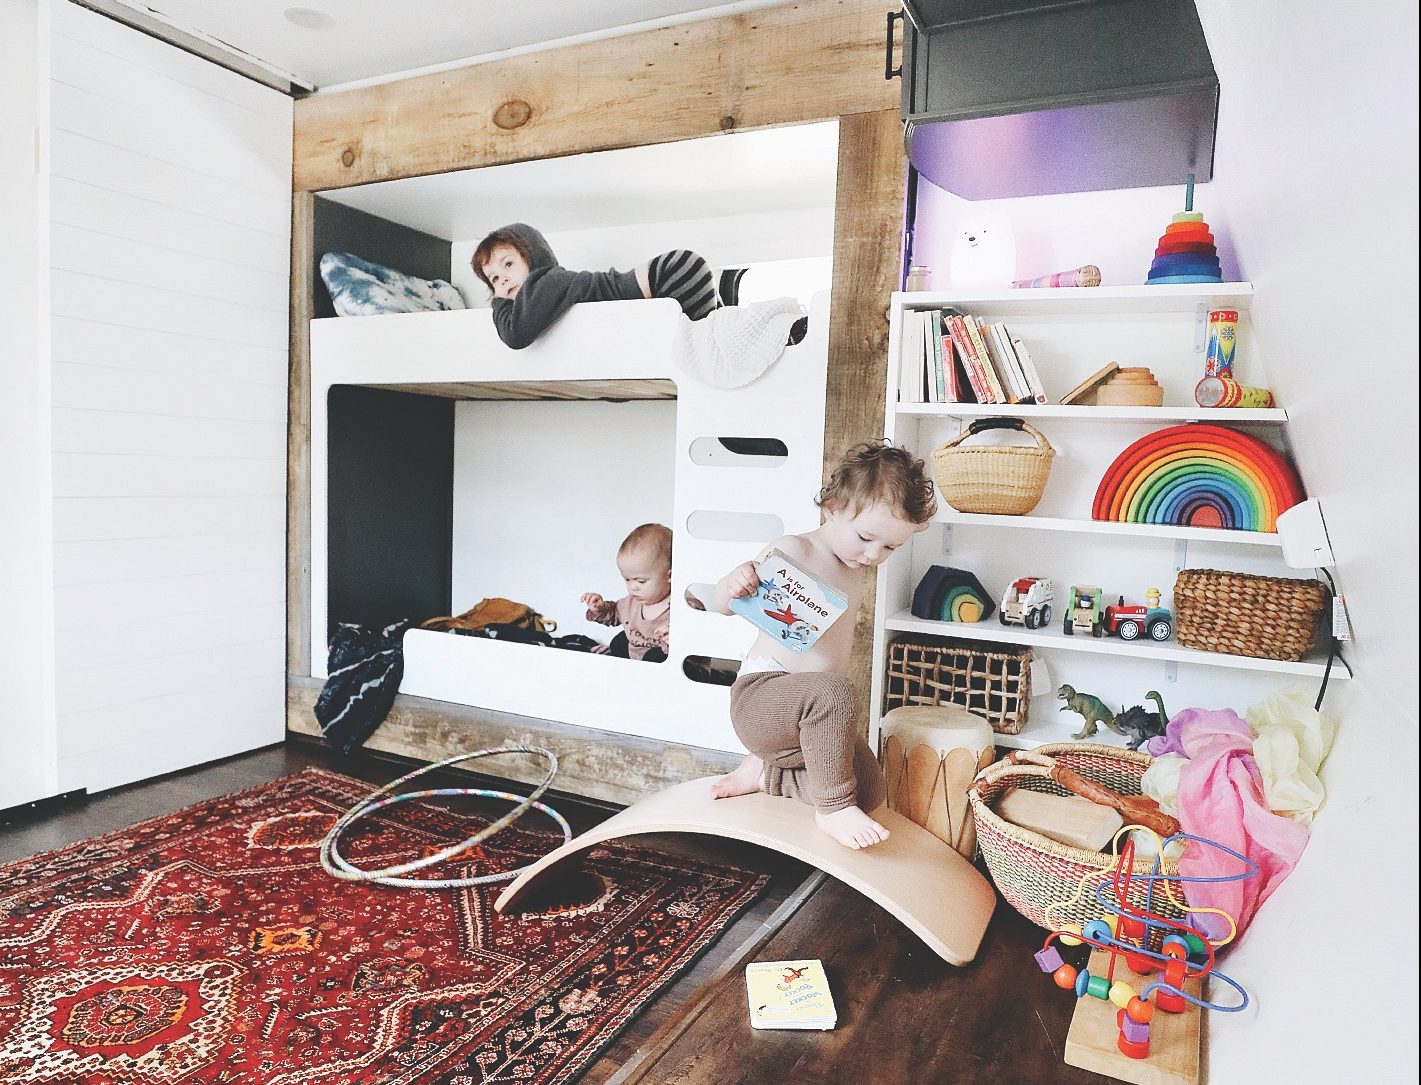 RV Kids Space - Redecorated